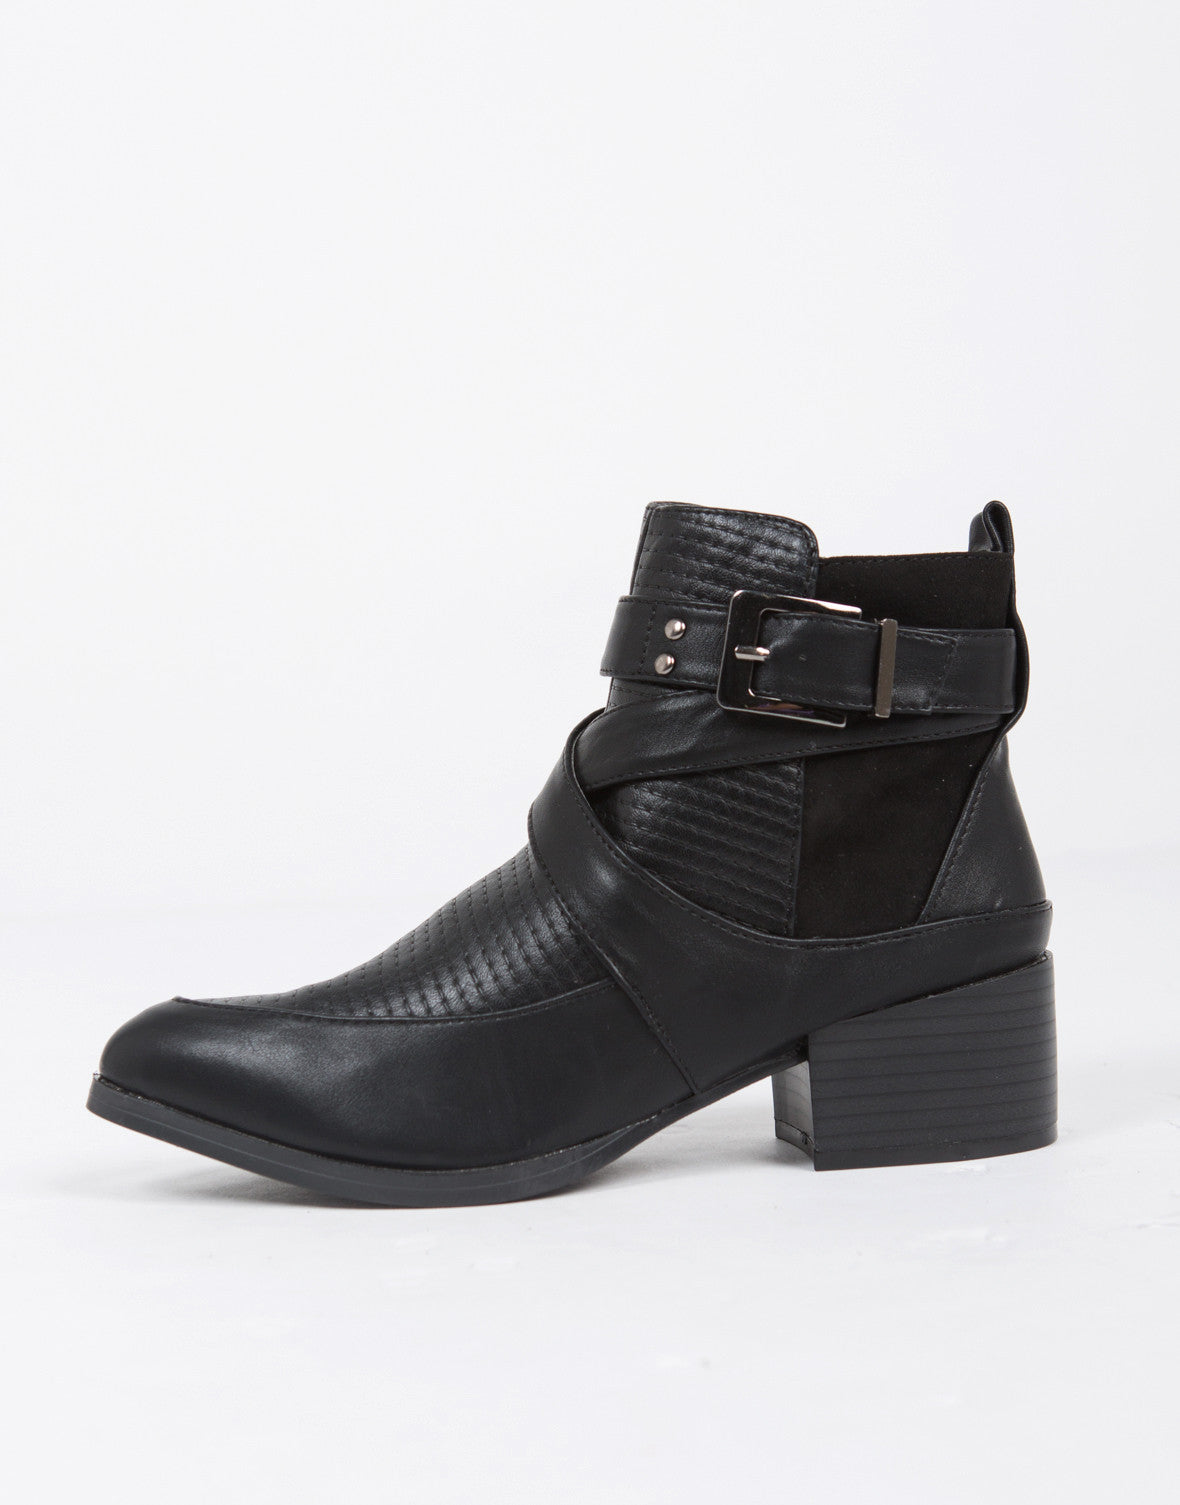 Moto Buckled Ankle Boots